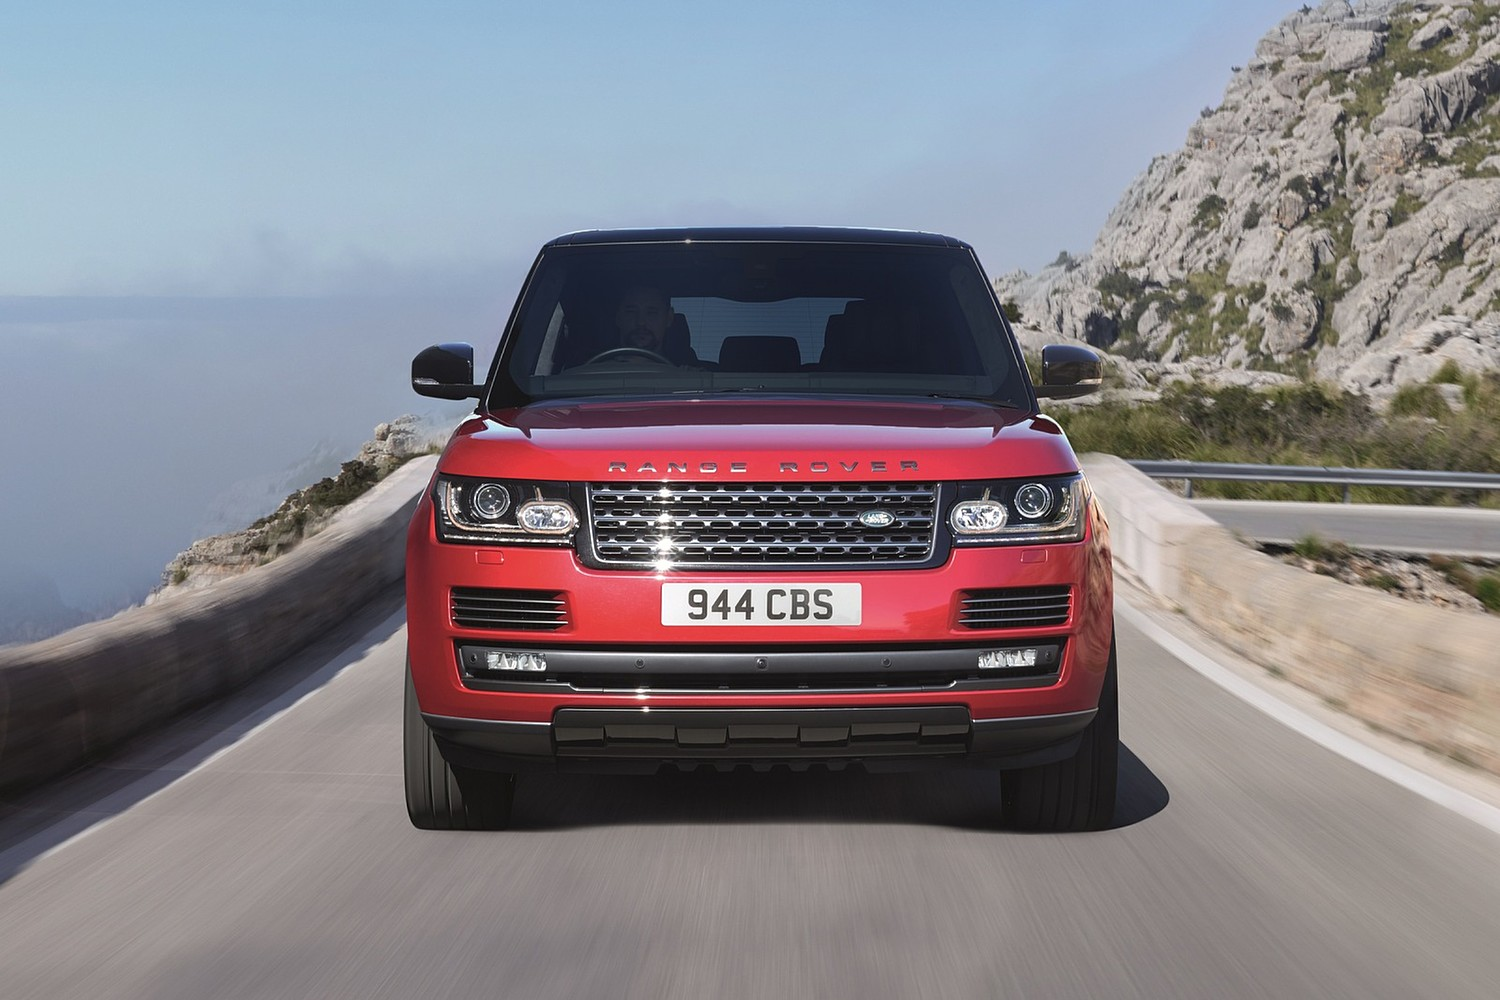 2017 Land Rover Range Rover SV Autobiography Dynamic 4dr SUV Exterior